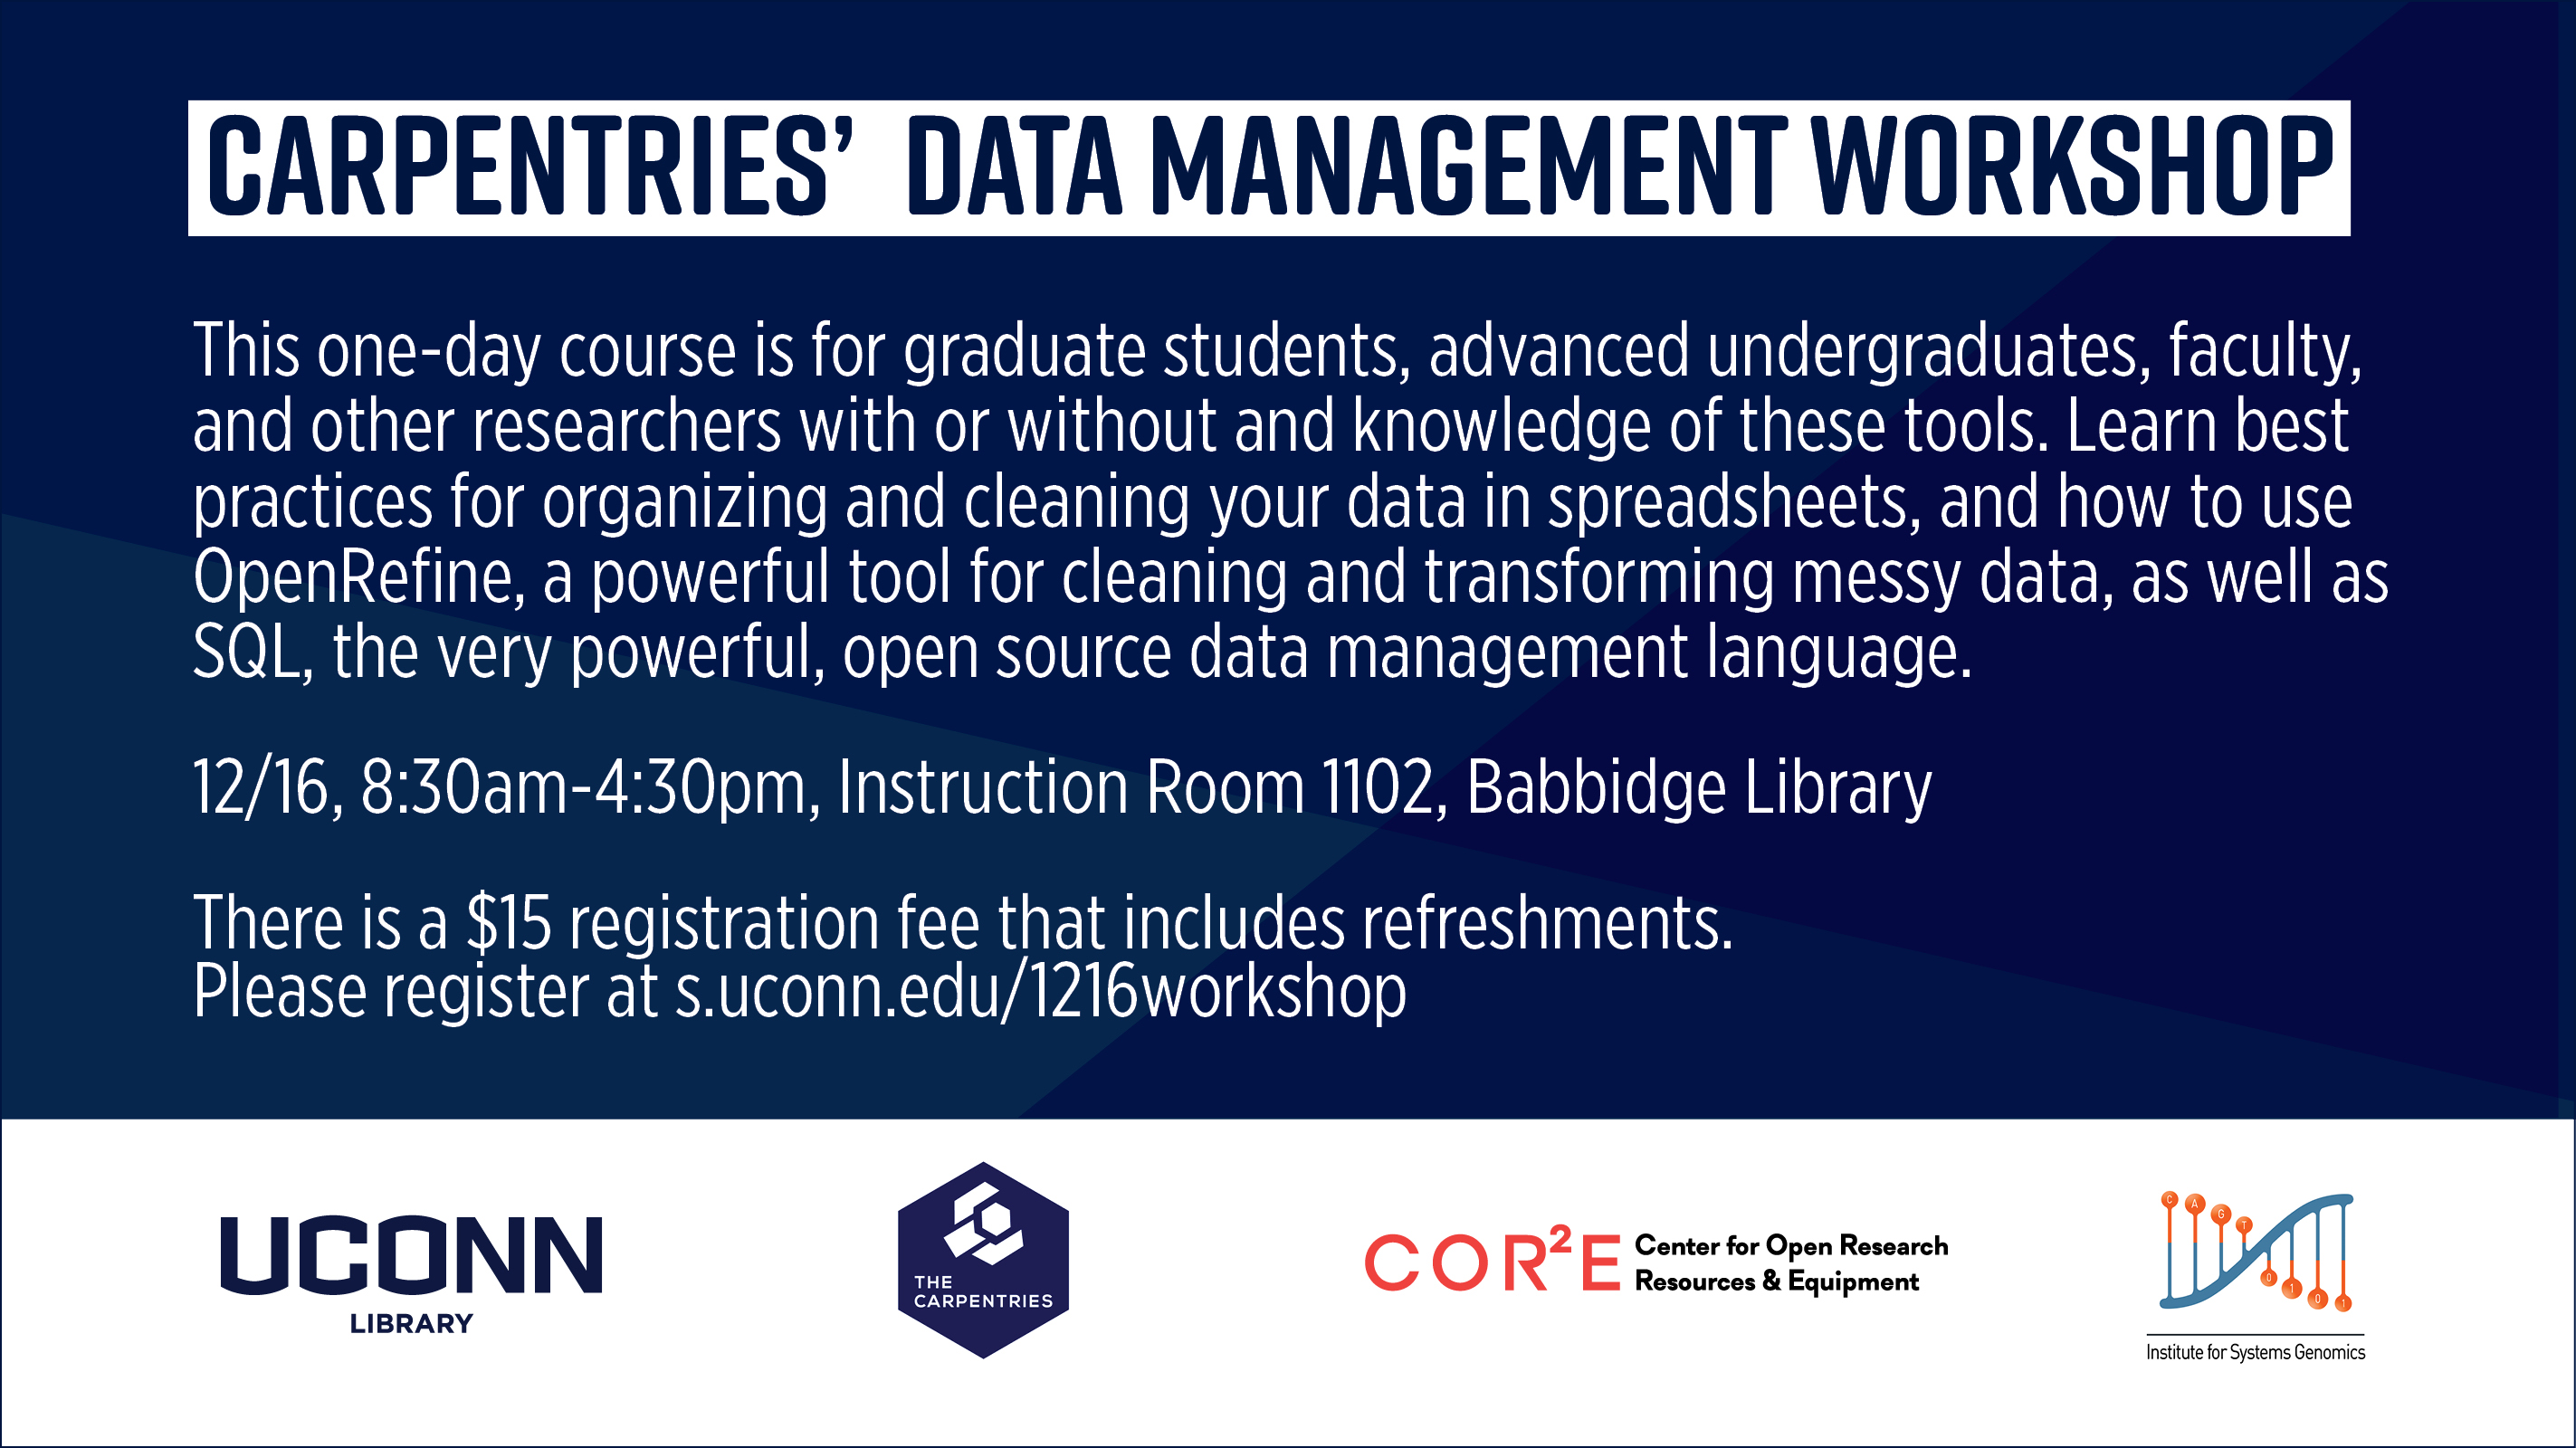 Carpentries' Data Management Workshop This one-day course is for graduate students, advanced undergraduates, faculty, and other researchers with or without and knowledge of these tools. Learn best practices for organizing and cleaning your data in spreadsheets, and how to use OpenRefine, a powerful tool for cleaning and transforming messy data, as well as SQL, the very powerful, open source data management language. 12/16, 8:30am-4:30pm, Instruction Room 1102, Babbidge Library There is a $15 registration fee that includes refreshments. Please register at s.uconn.edu/1216workshop